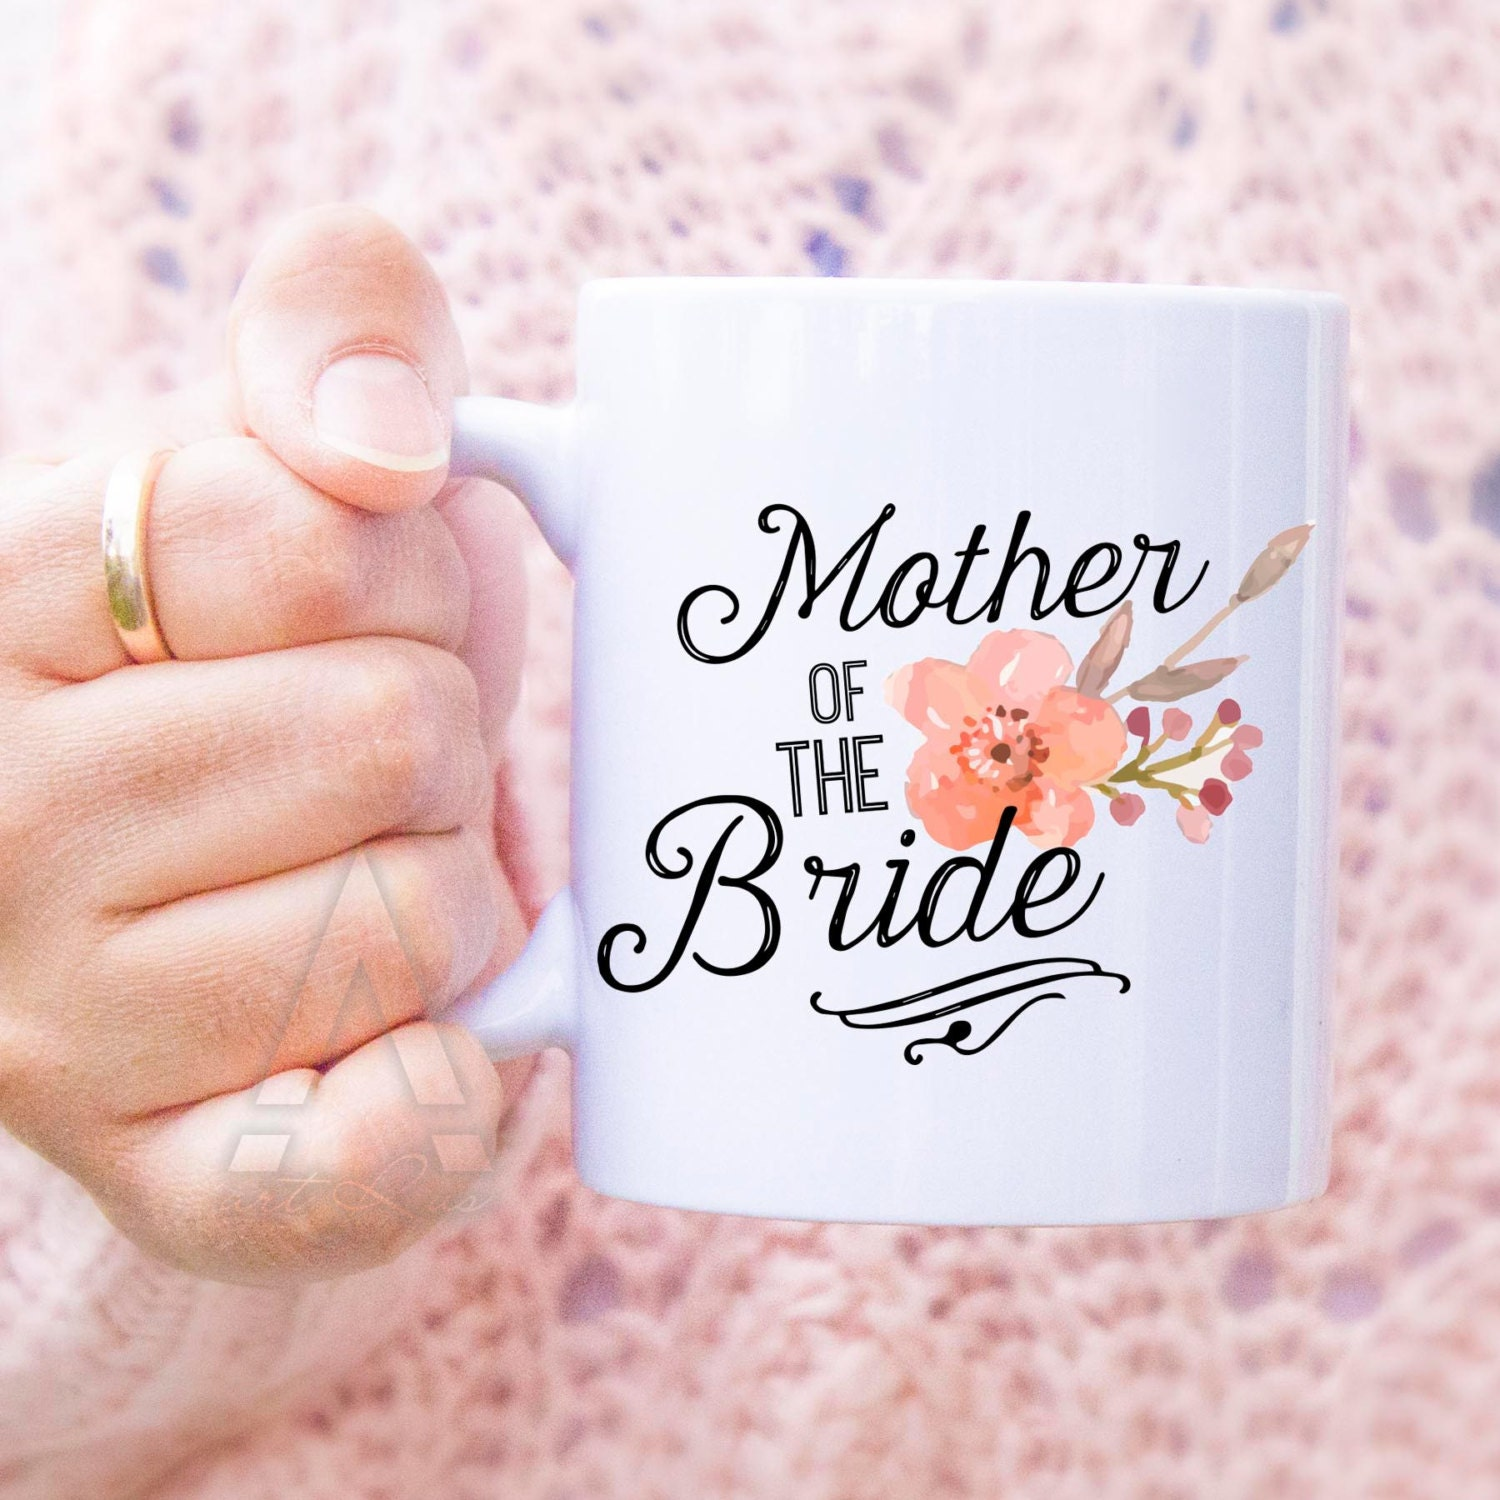 Mother Of The Bride Gifts: Gifts For Mother Of The Bride Mother Of The Bride Gift Ideas